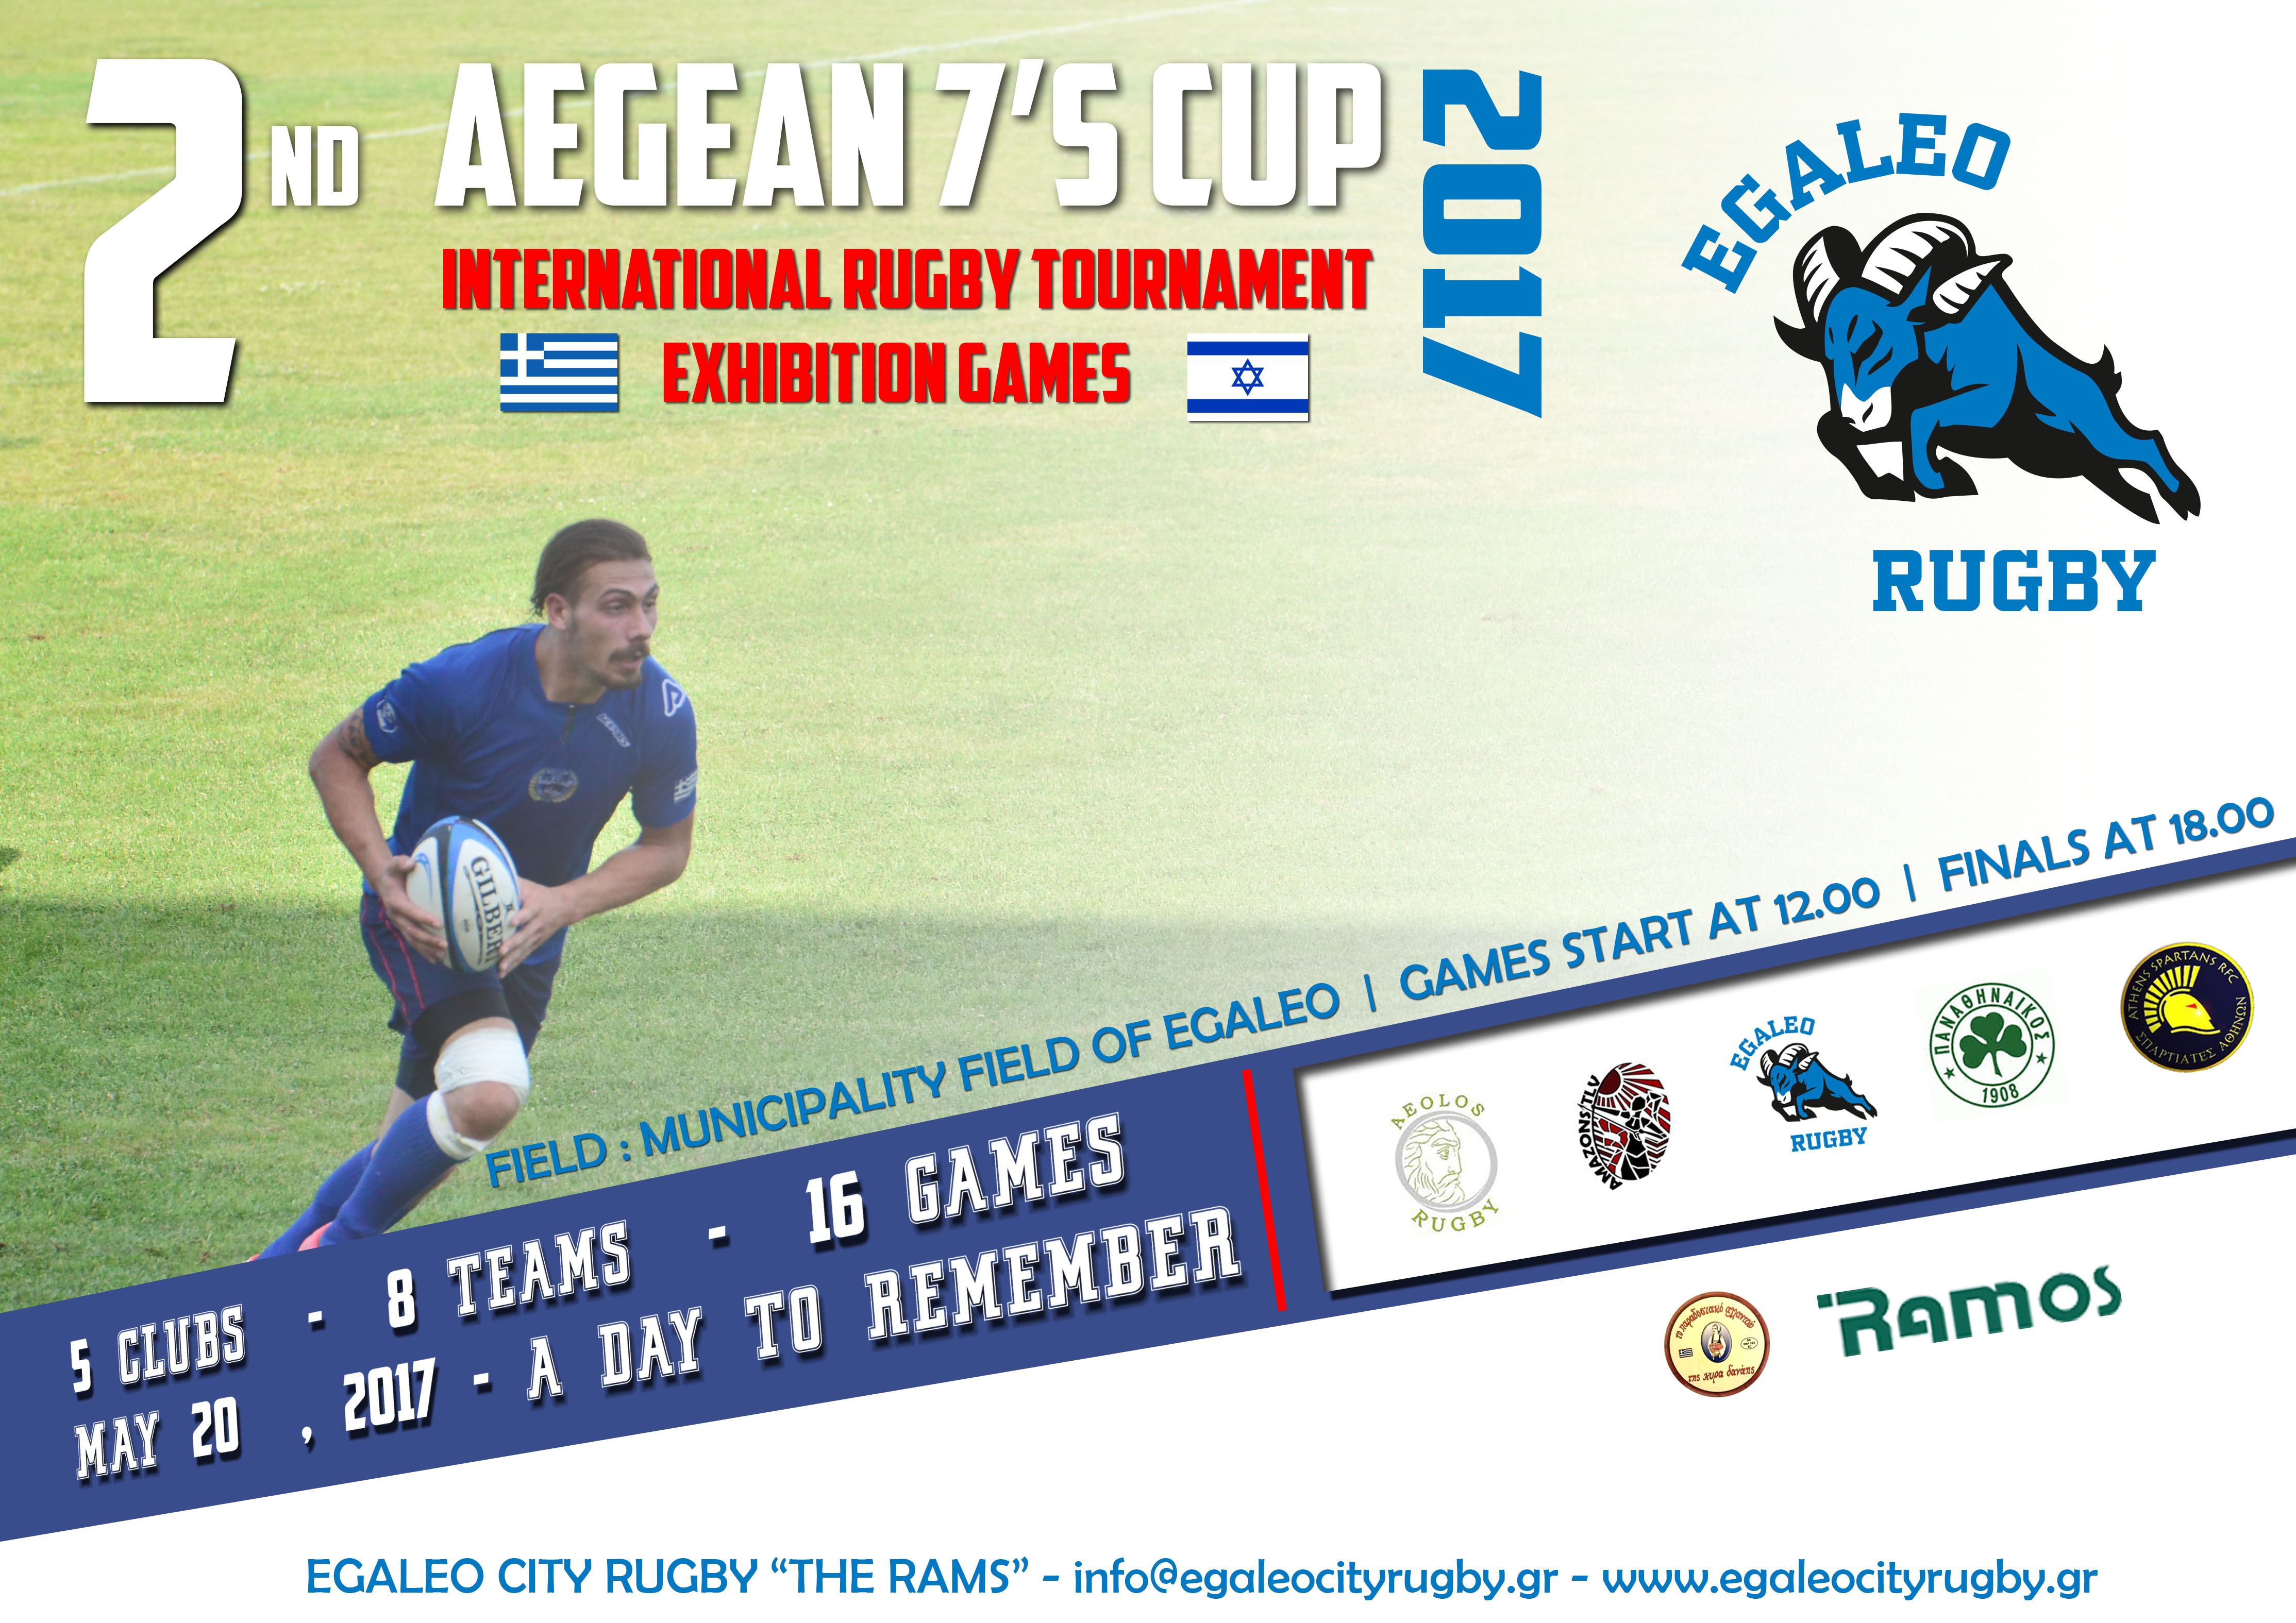 2nd Aegean 7's Cup